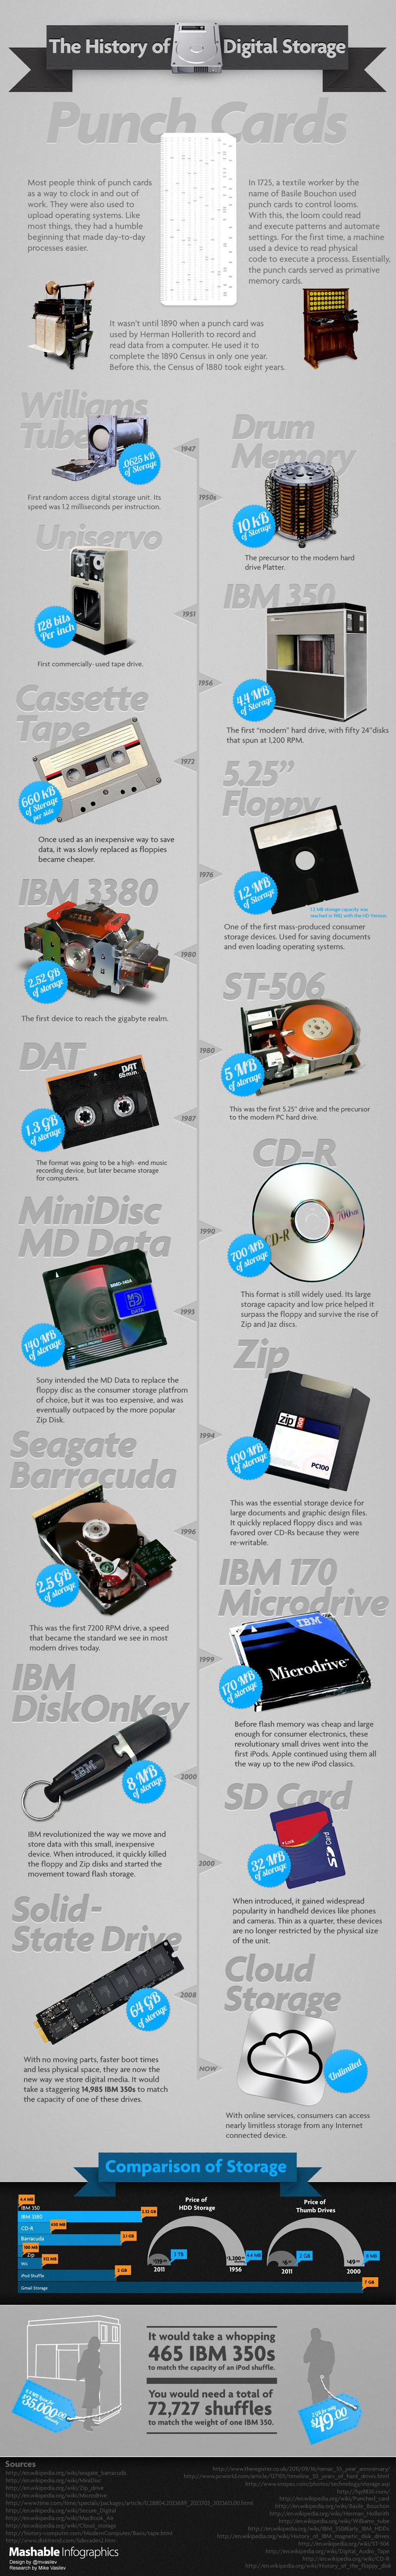 What Is The History Of Digital Storage? #infographic